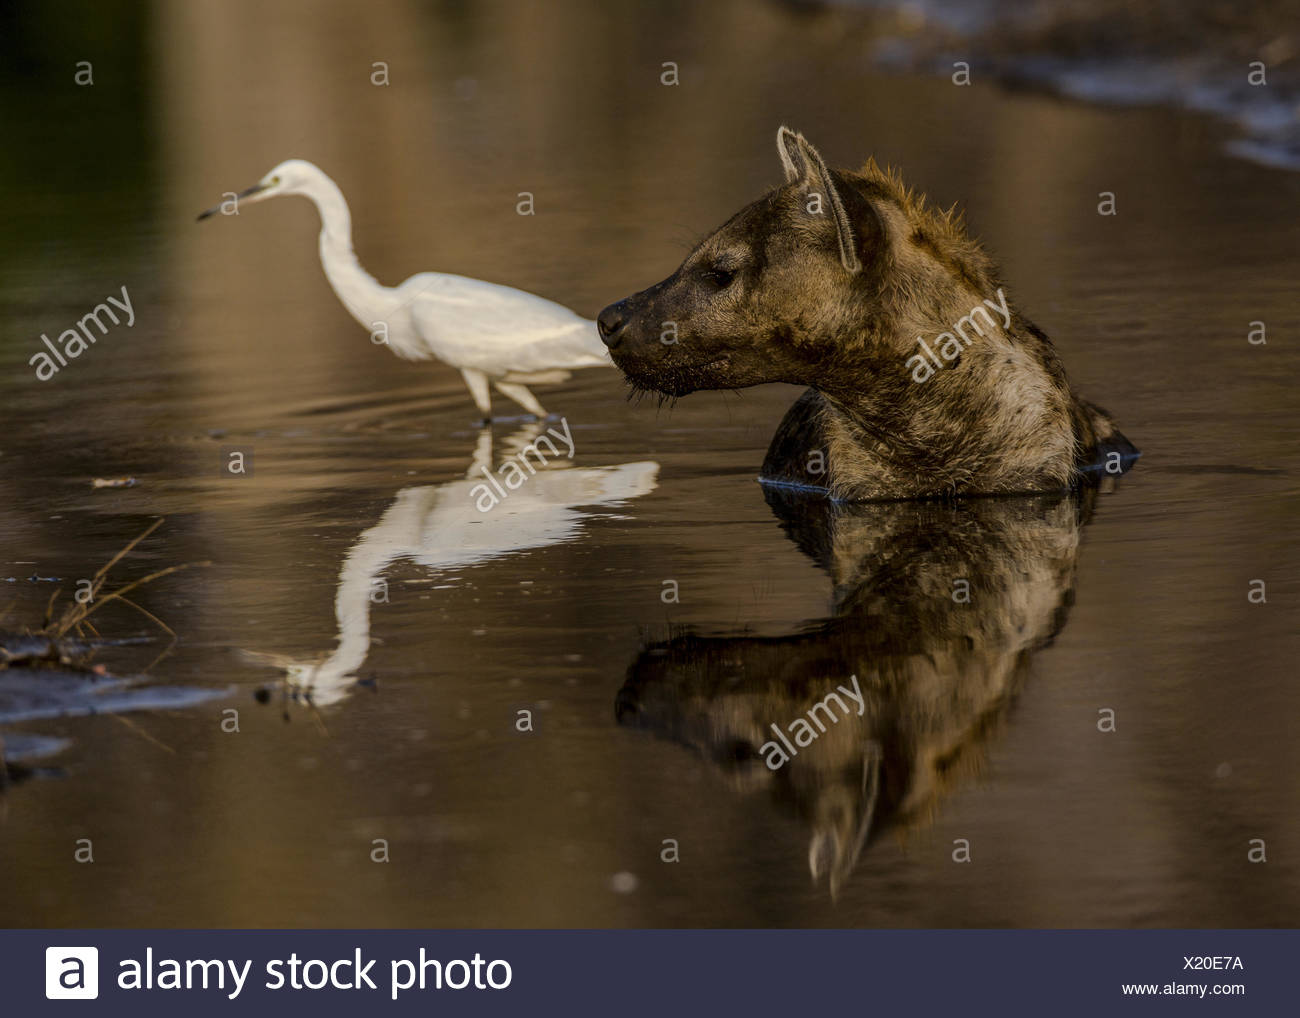 A Spotted Hyena, Crocuta crocuta, lies in a small water pool to cool down in the midday sun,. - Stock Image